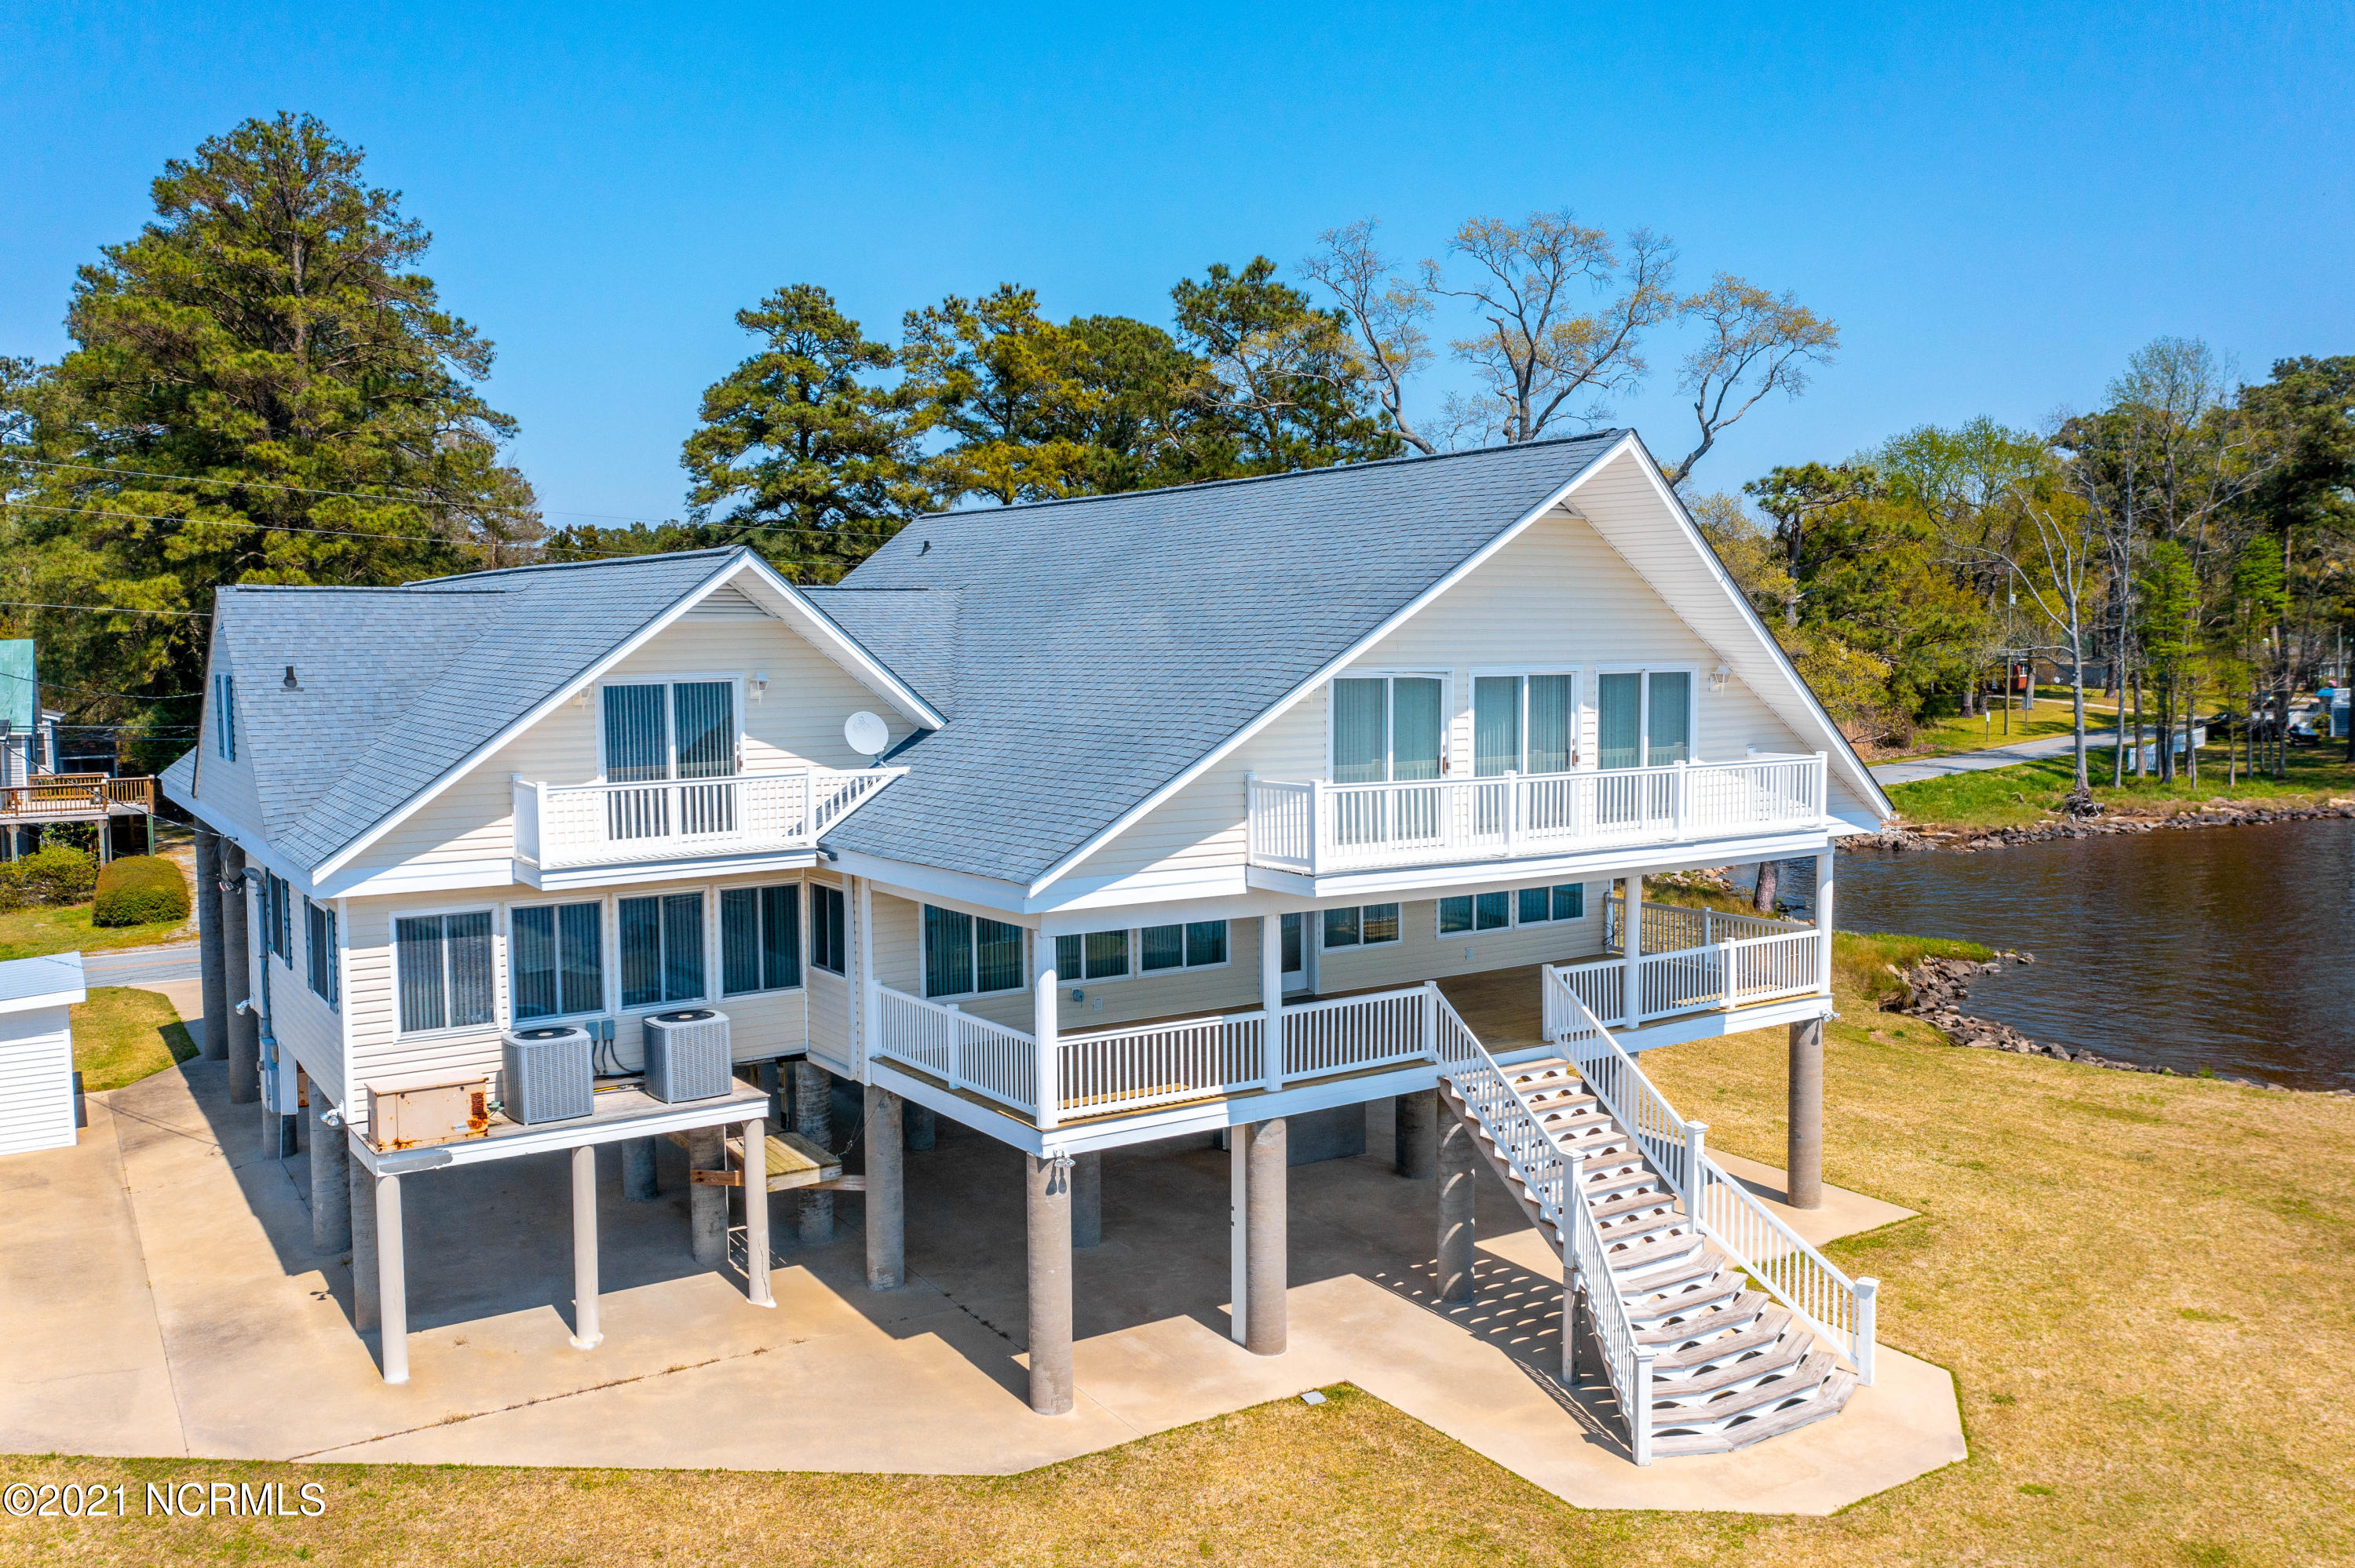 1491 Bayview Road, Bath, North Carolina 27808, 5 Bedrooms Bedrooms, 9 Rooms Rooms,3 BathroomsBathrooms,Single family residence,For sale,Bayview,100265116